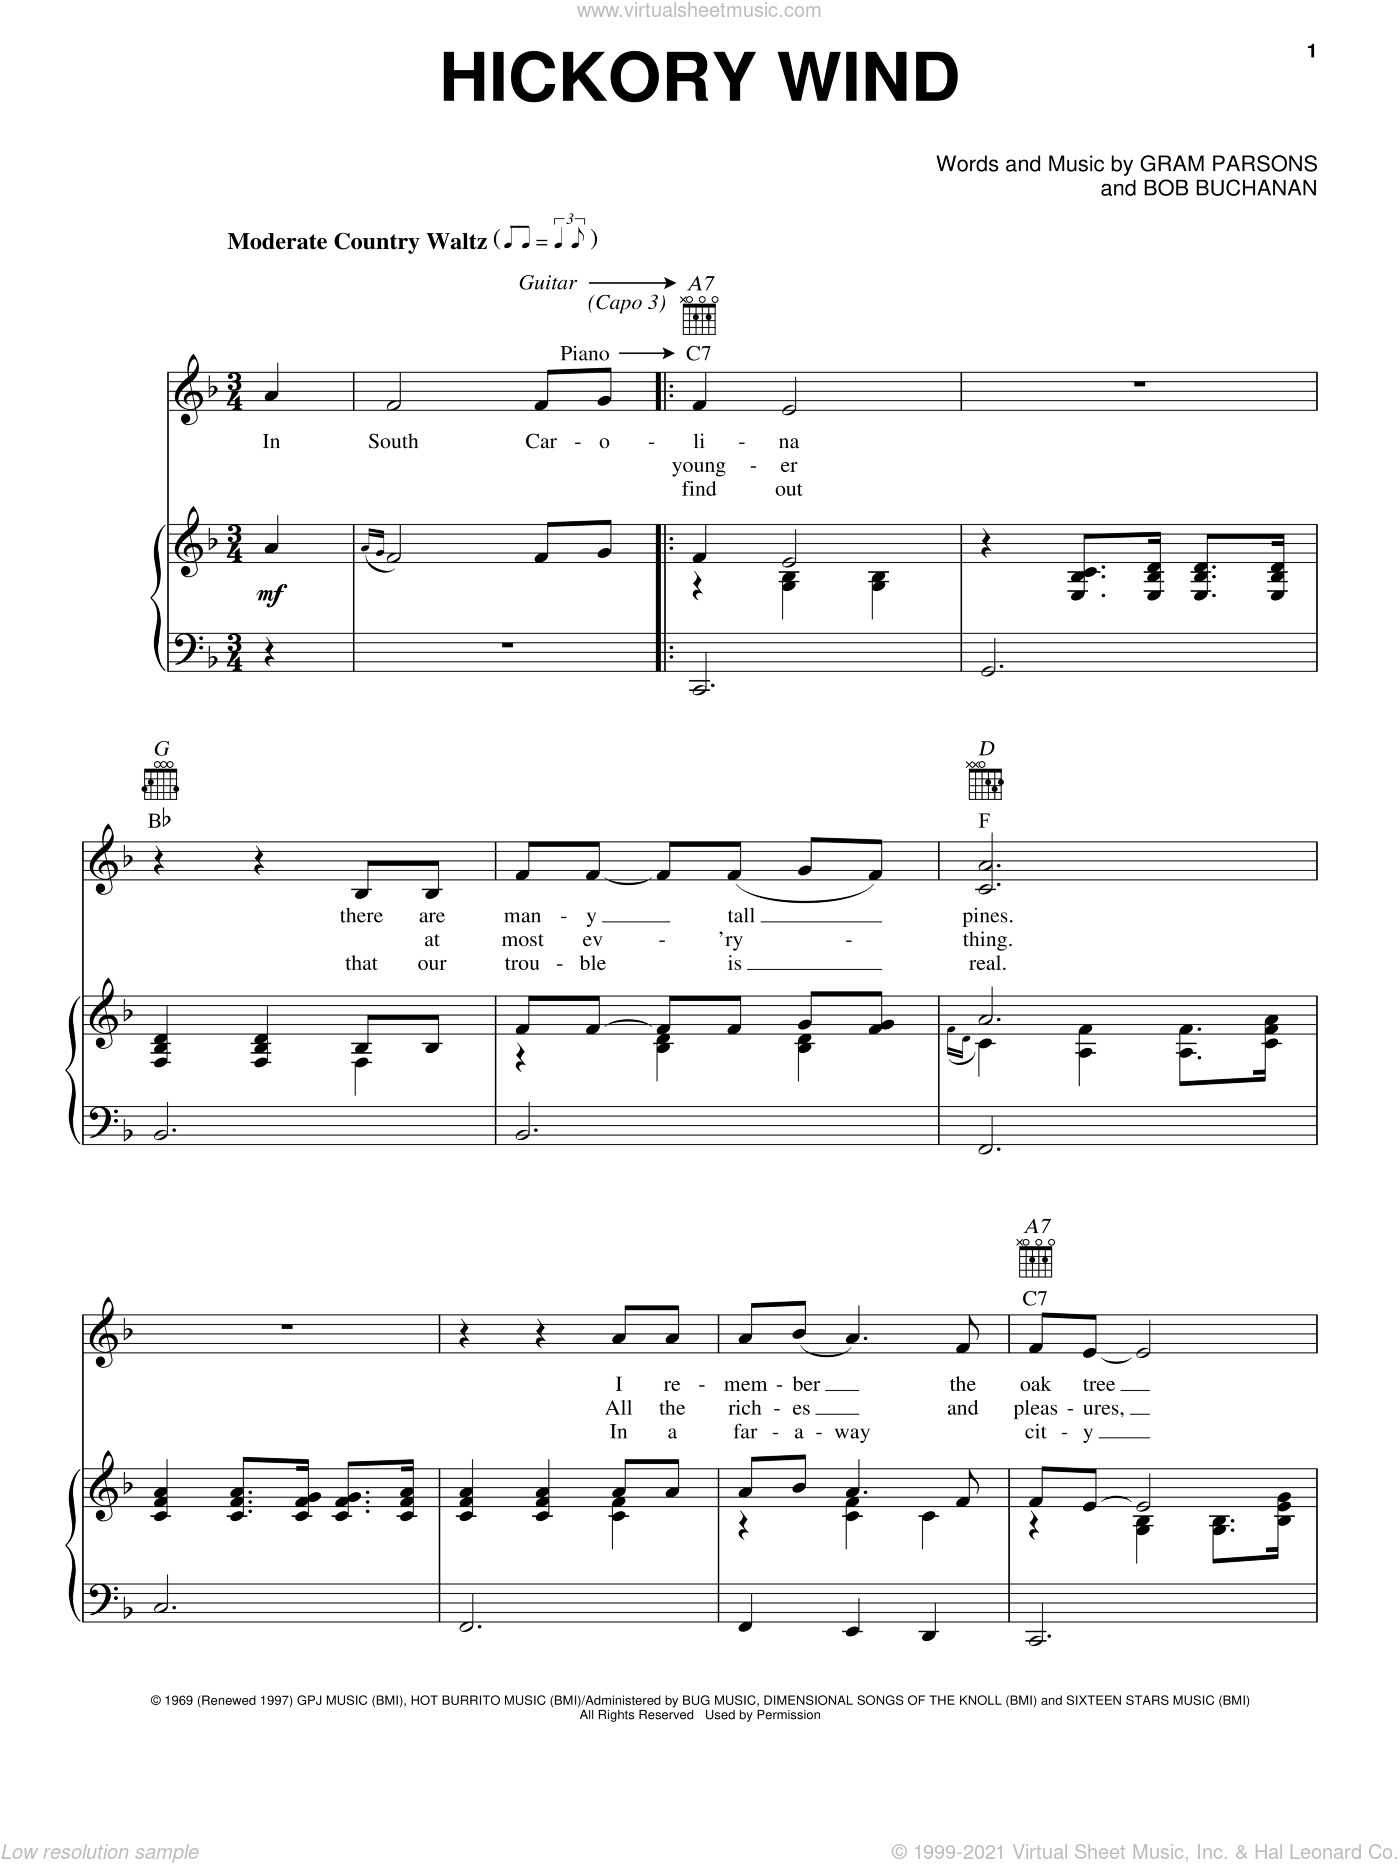 Hickory Wind sheet music for voice, piano or guitar by Bob Buchanan and Gram Parsons. Score Image Preview.